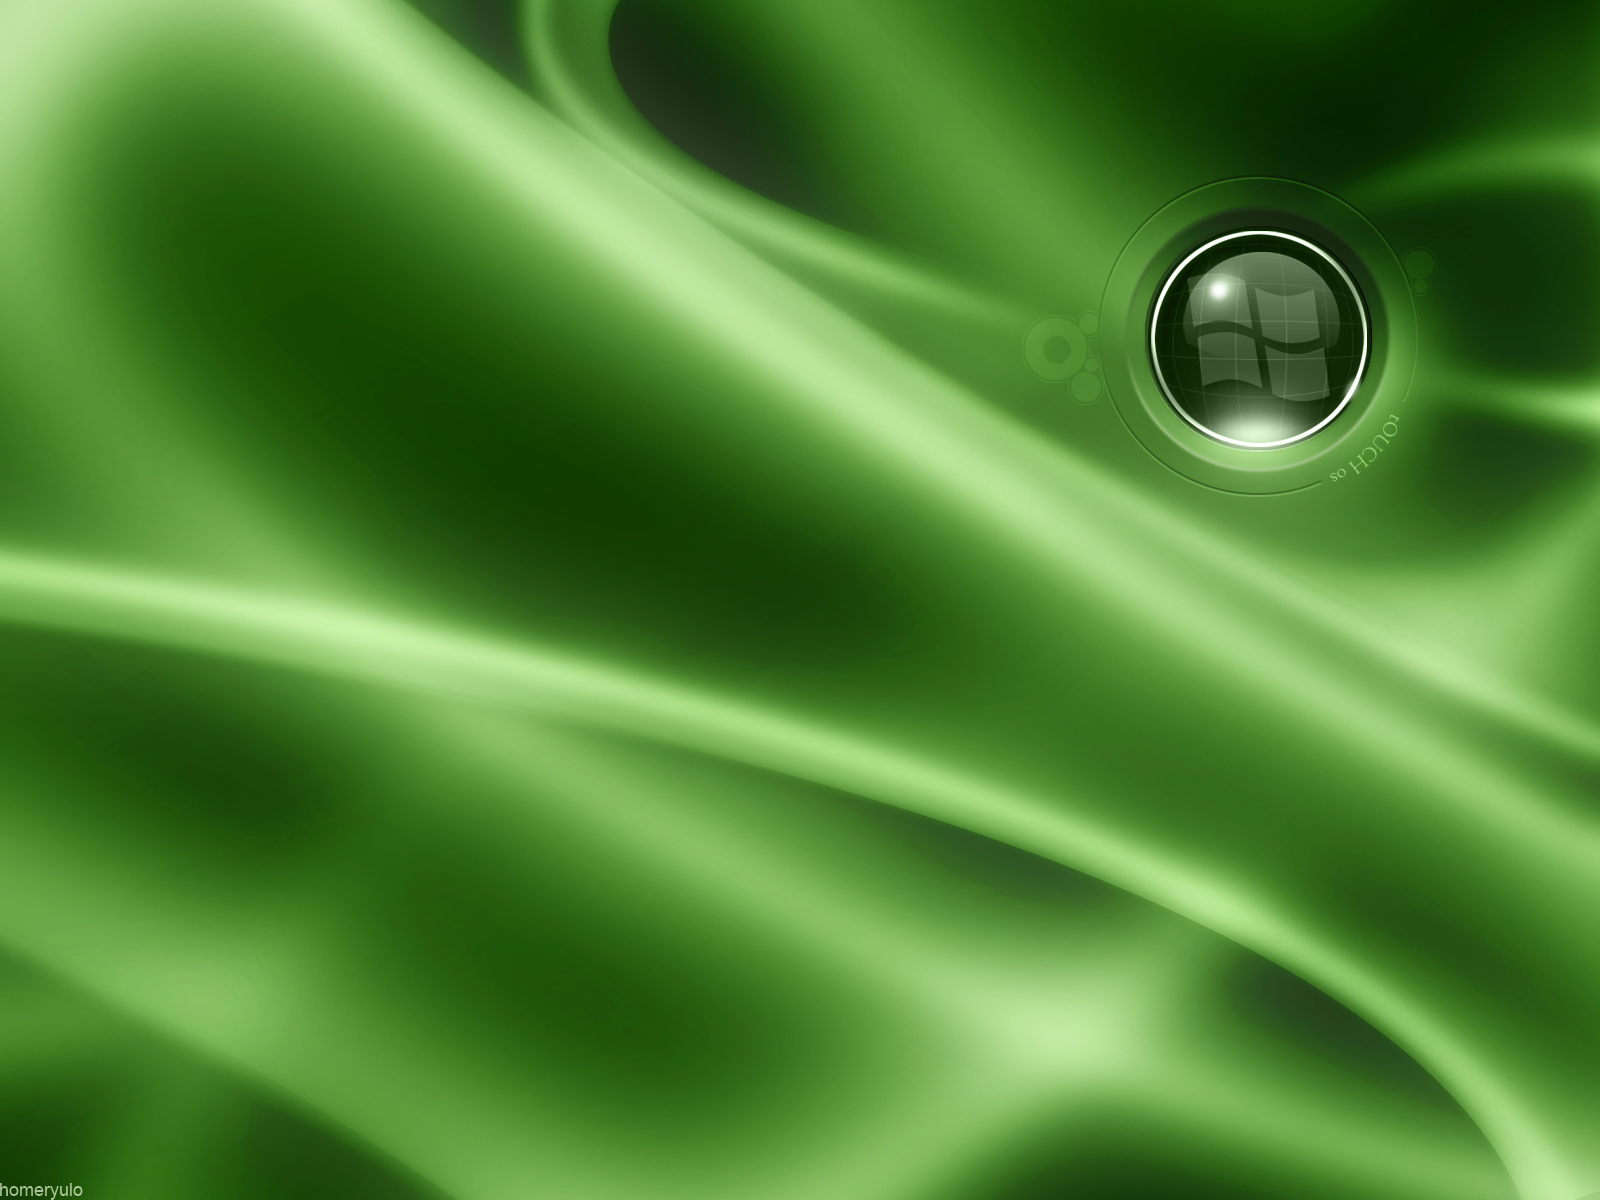 1600x1200 green desktop desktop pc and mac wallpaper